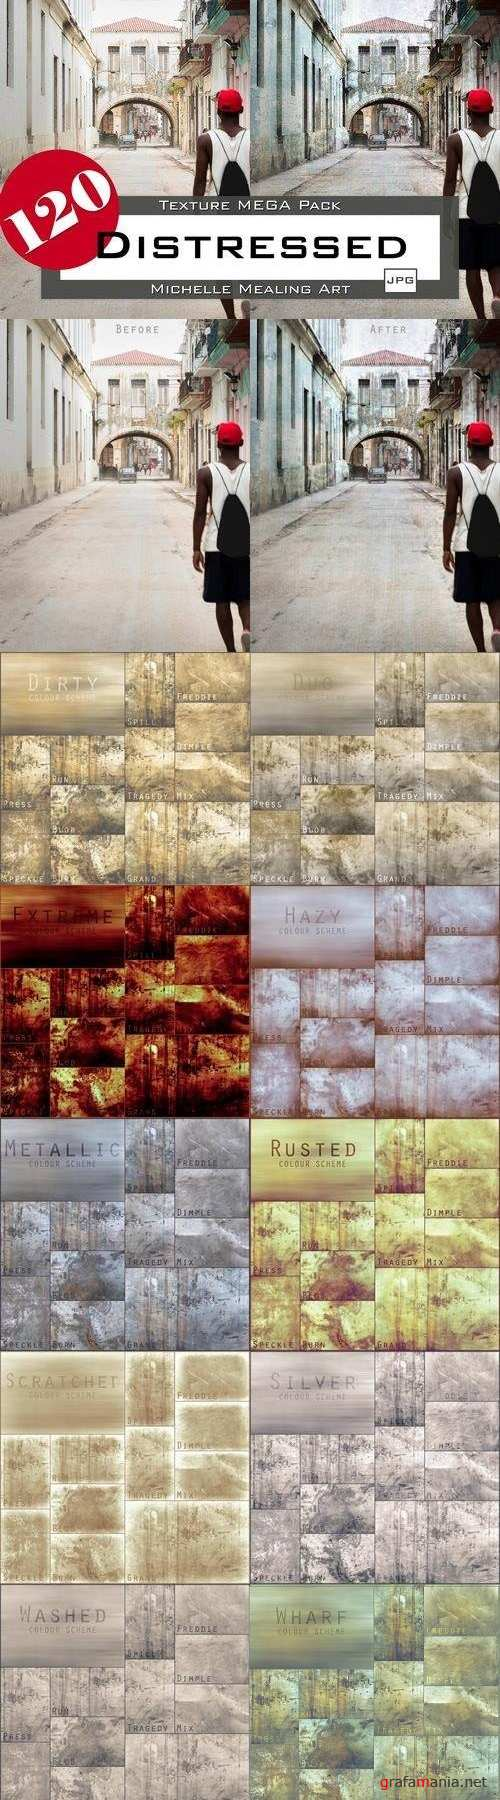 Distressed: 120 Texture MEGA Pack - 2058604